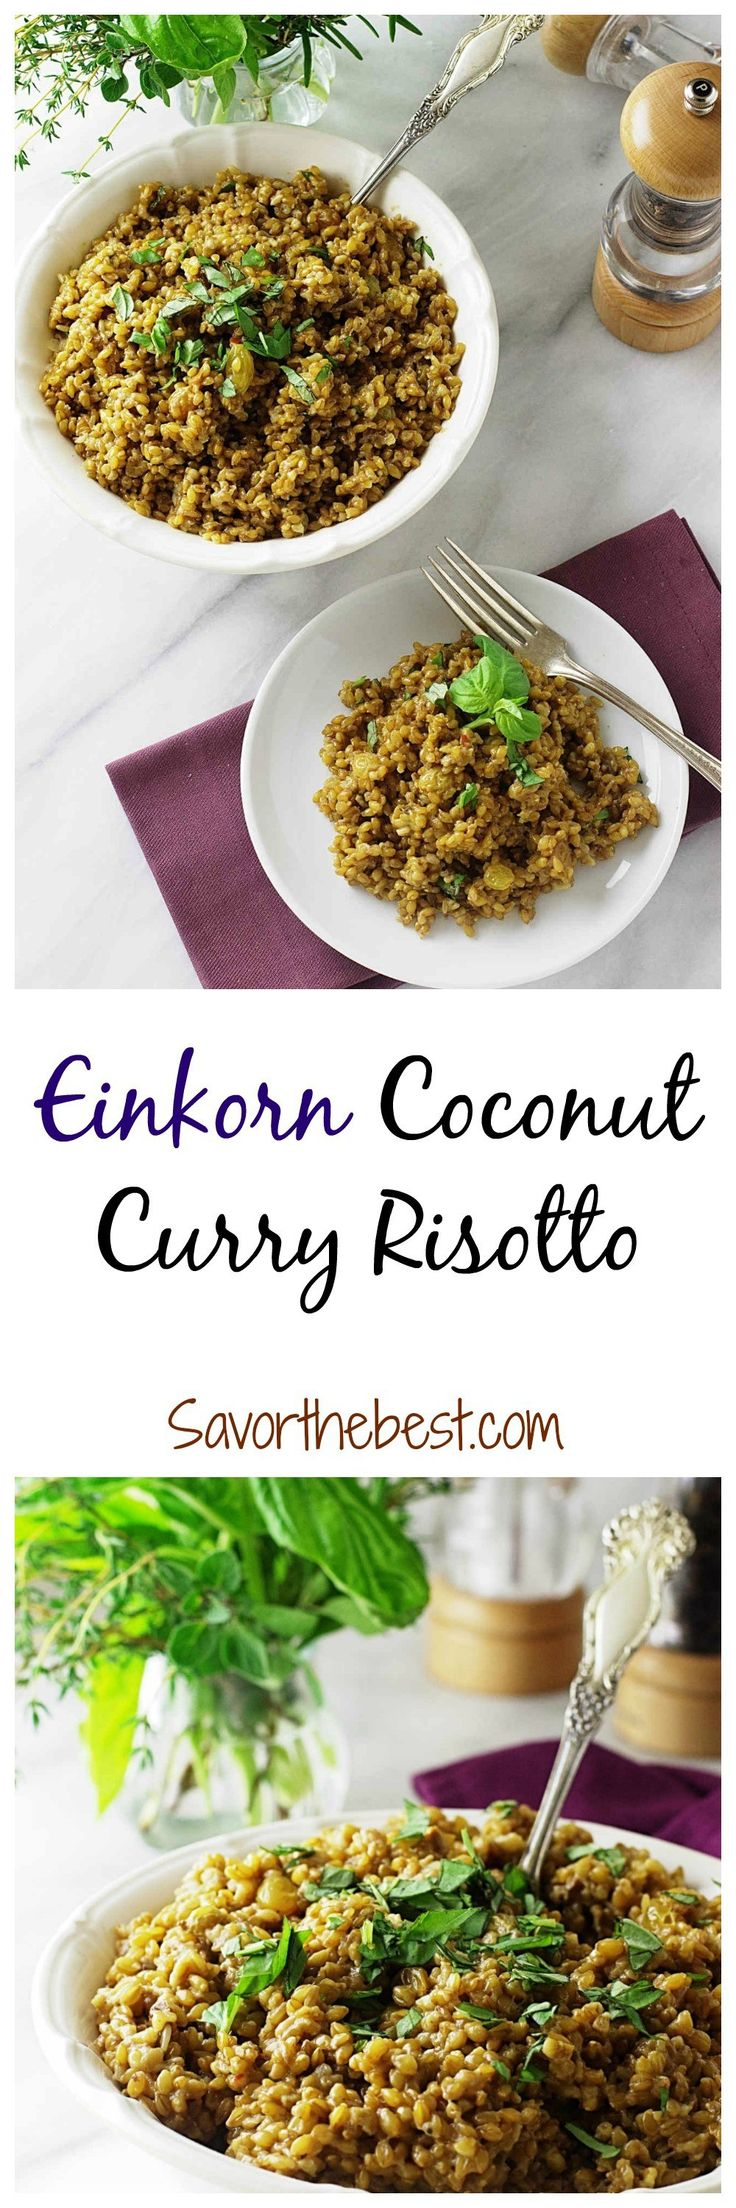 A delicious coconut curry risotto made with einkorn wheat berries instead of…